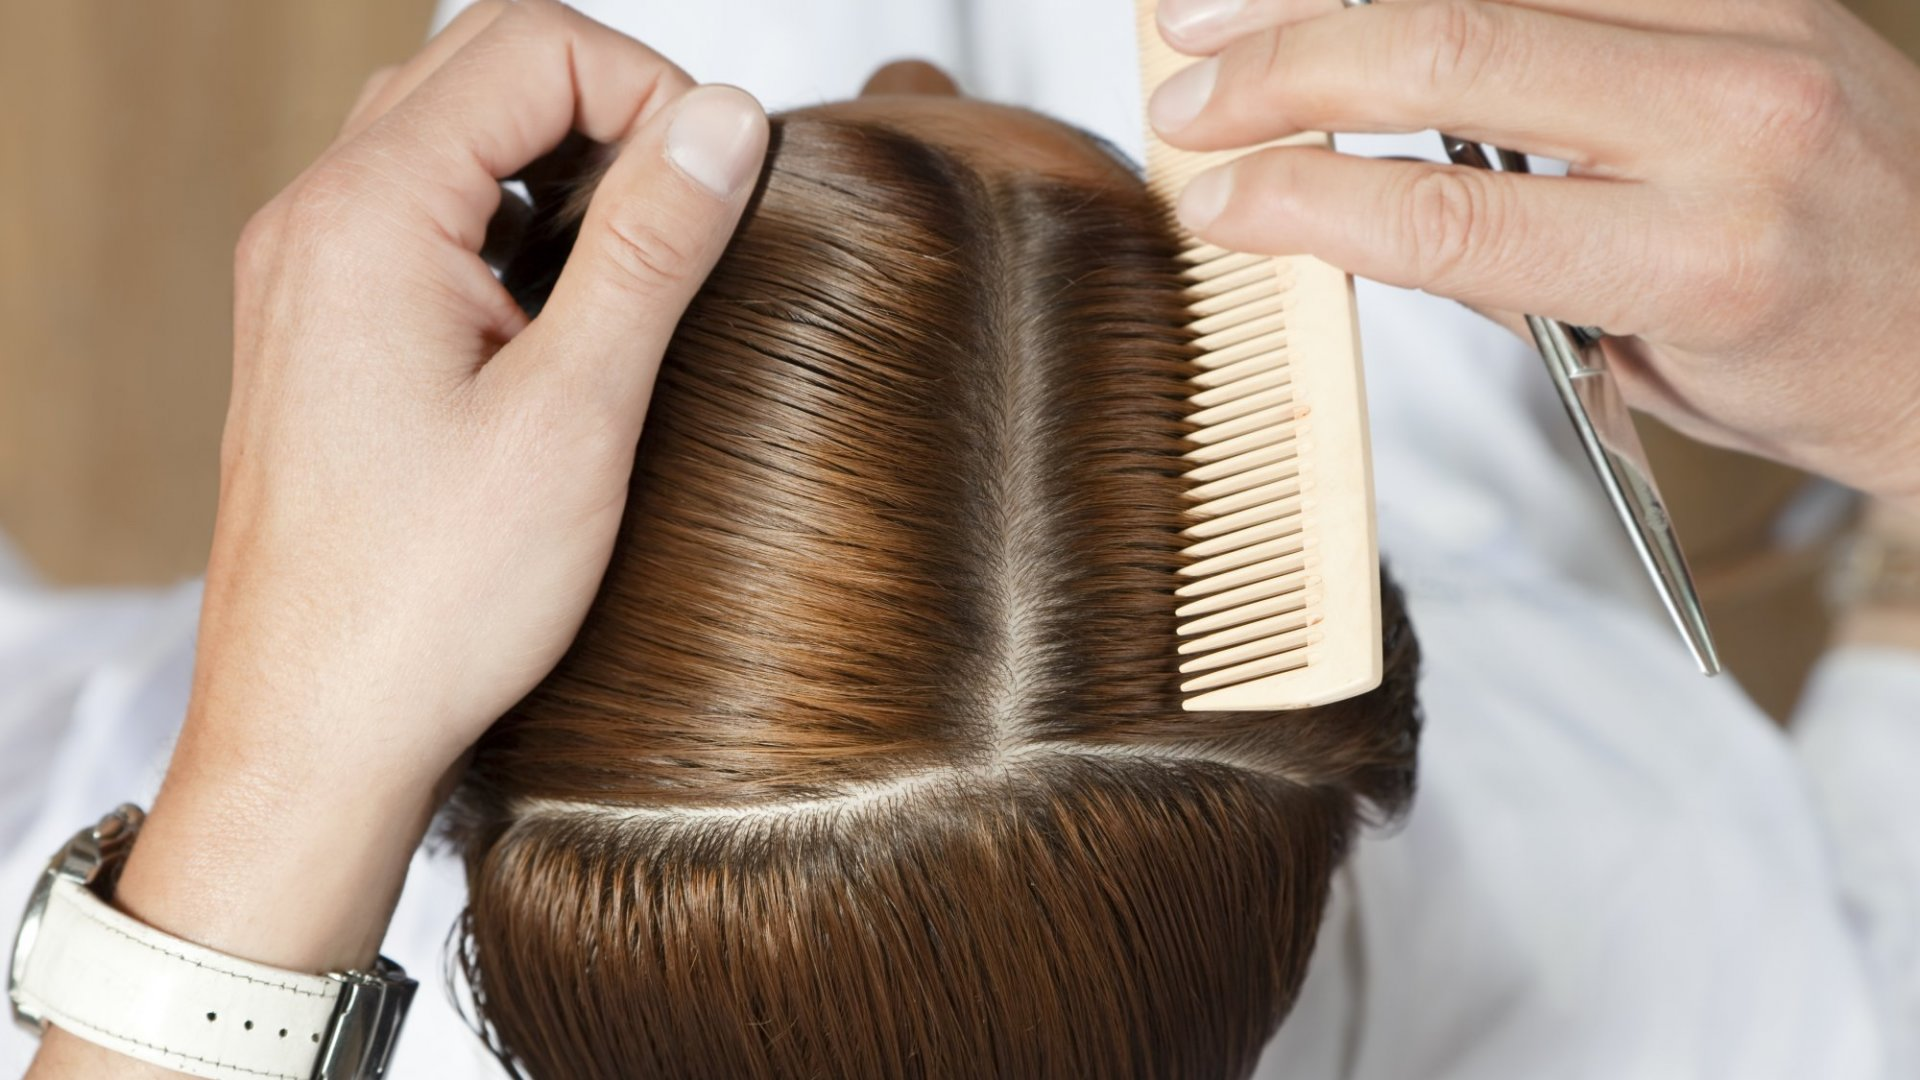 Being Successful Could Come Down to Changing Up Your Hair, Says Science